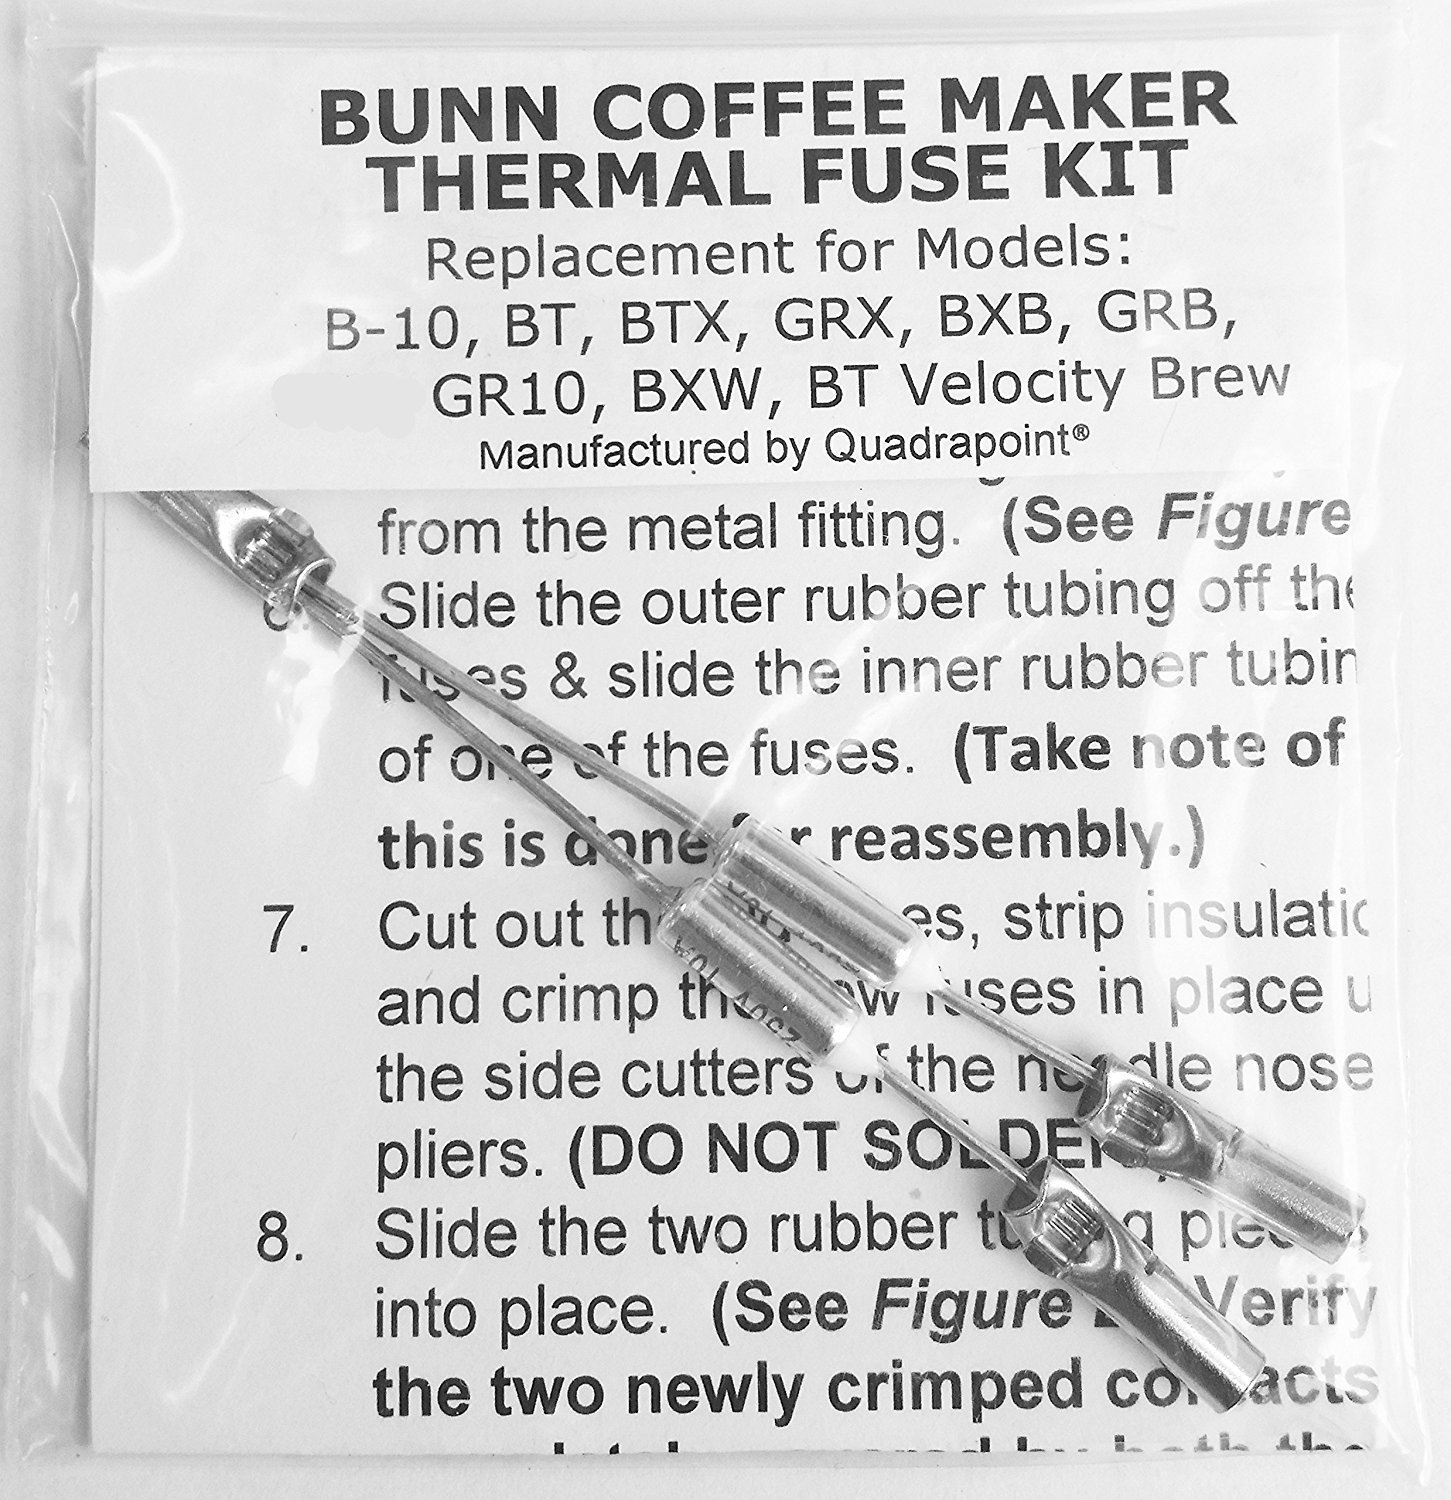 Repair Your Bunn Coffee Maker Water Not Heating Wiring Diagram Thermal Fuse Harness B 10 Grx Bxb Btx Grb Br10 Bxw Bt Velocity Brew Kitchen Dining